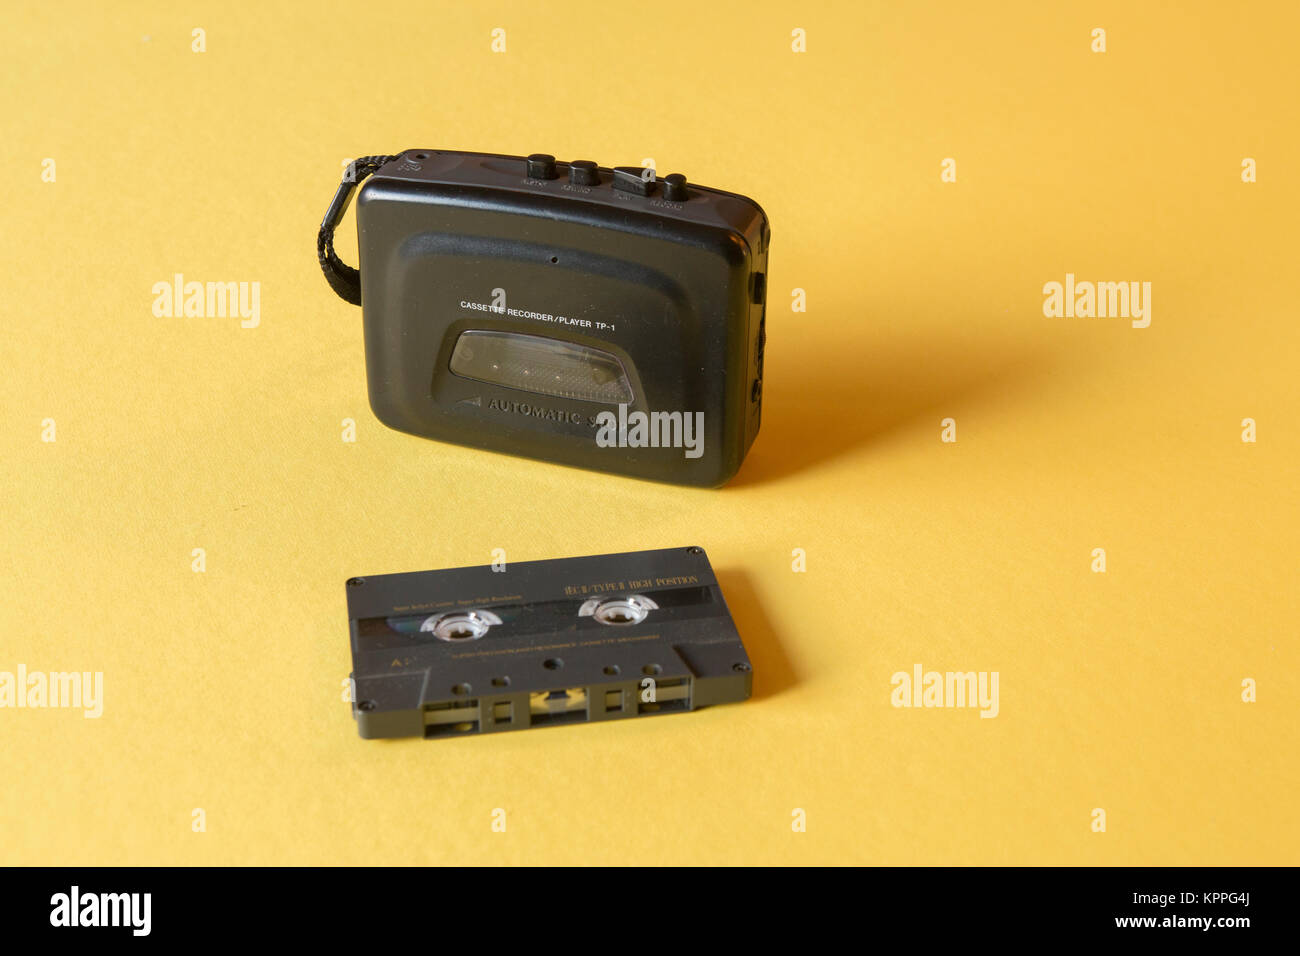 old-fashioned music cassette and walkman - Stock Image